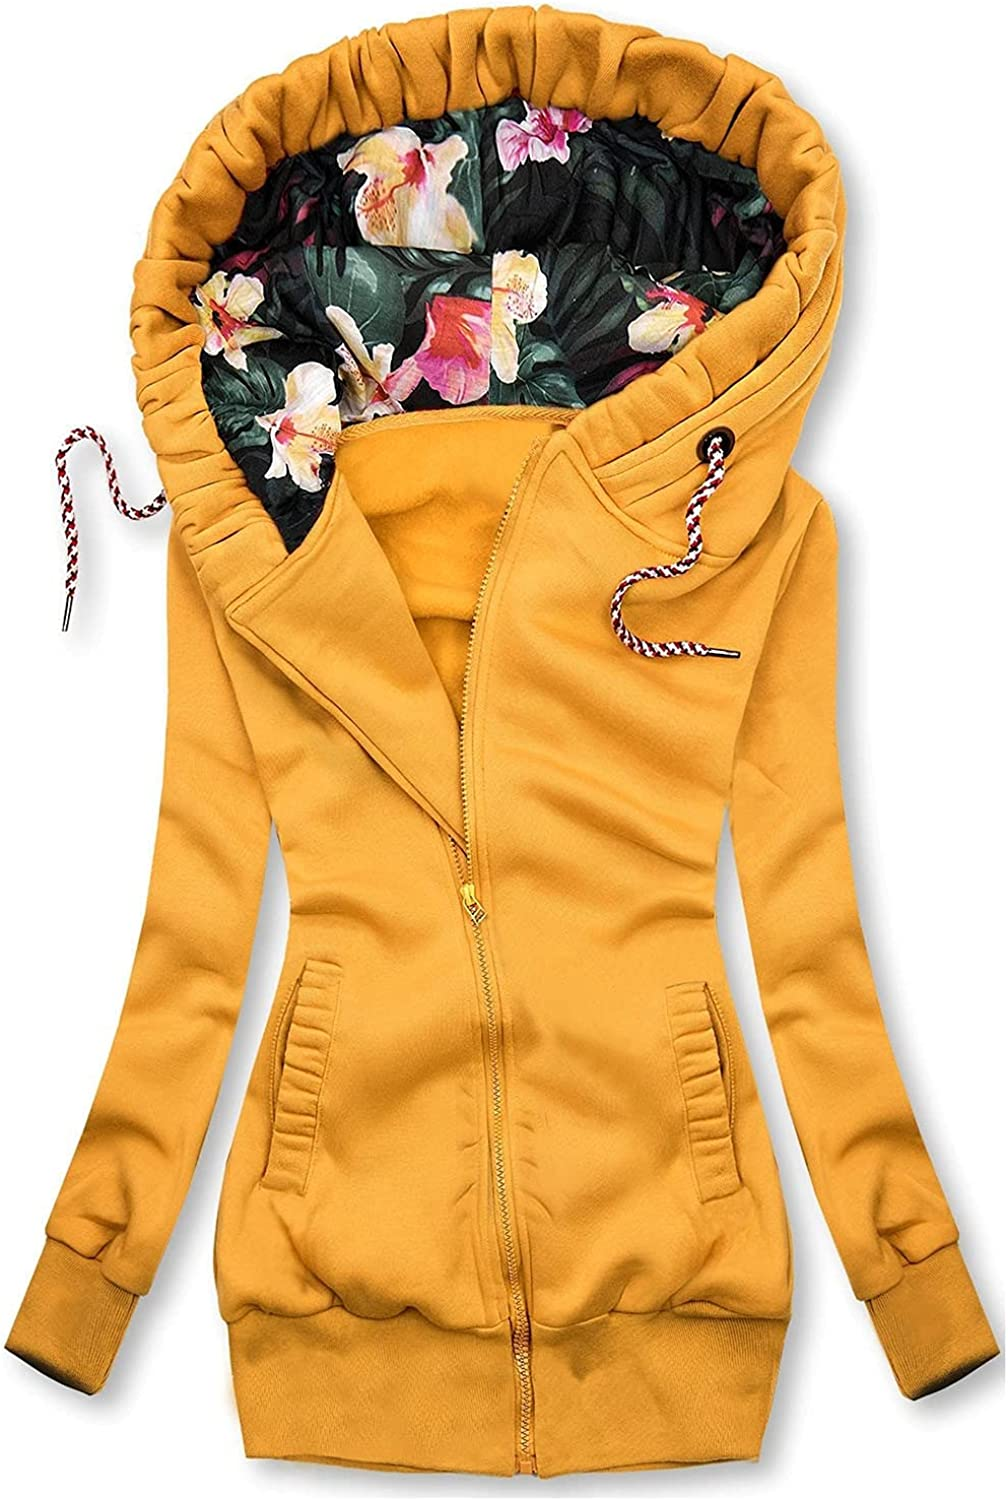 Womens Tops Floral Graphic Challenge the lowest price Warm Coat Full Sleeve Long Same day shipping V-Neck Zip